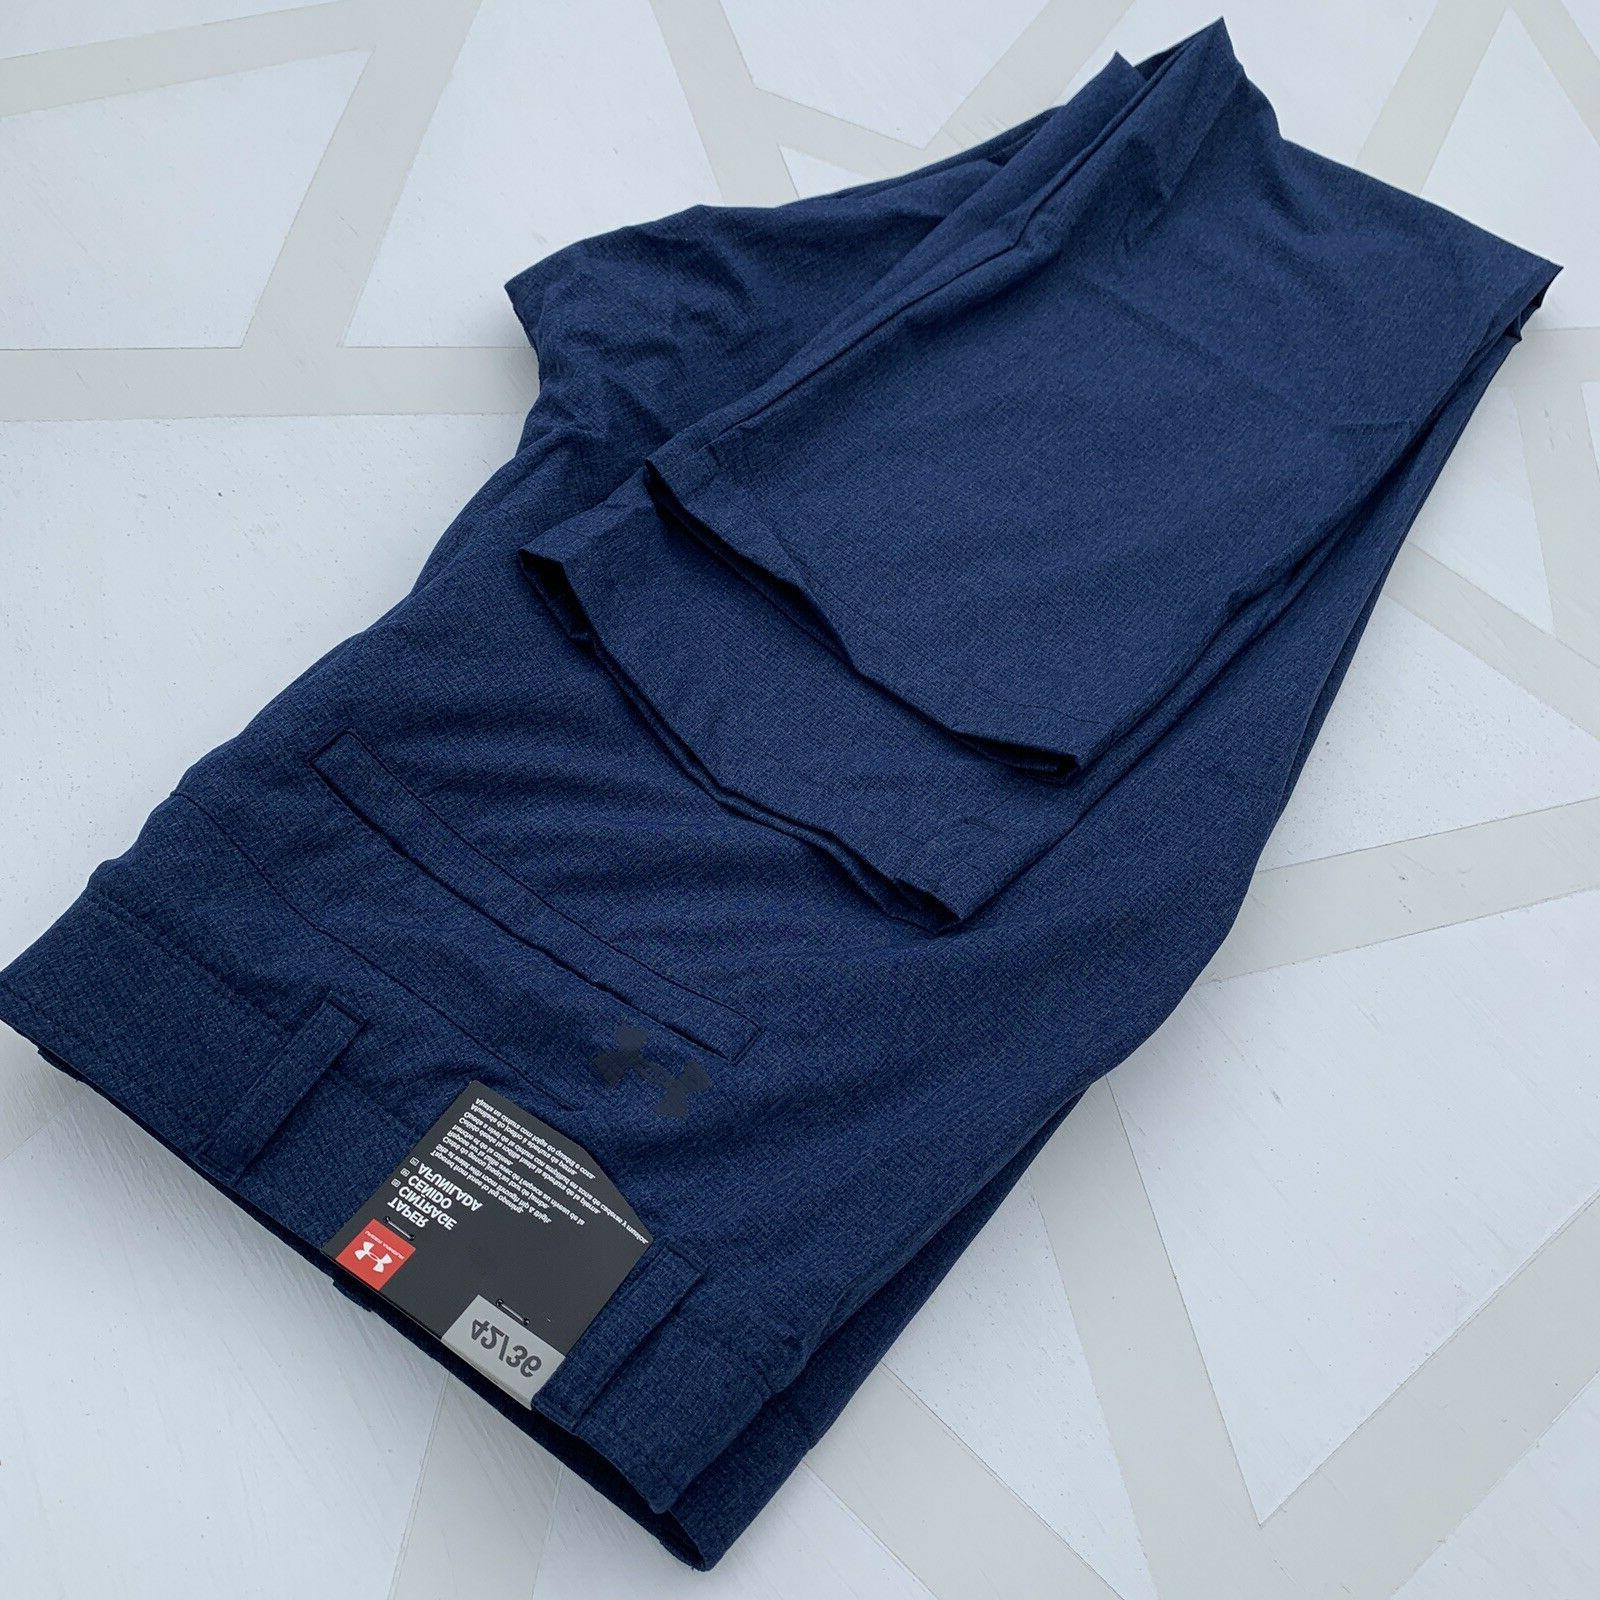 NEW Under Armour Men's Size 42x36 Loose Match Vented Navy Blue